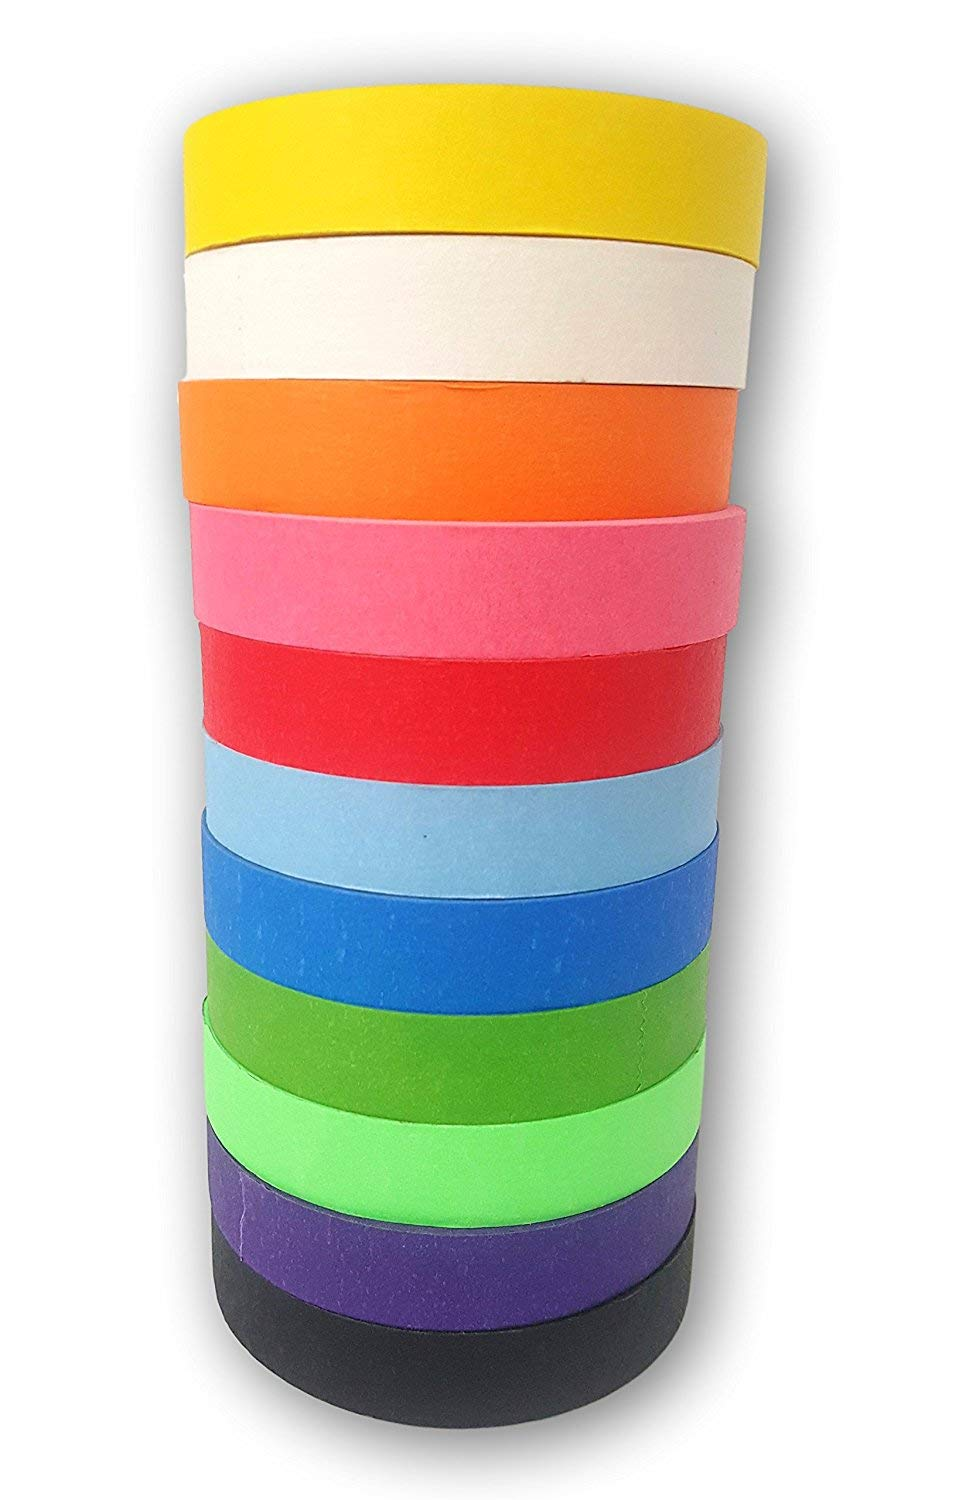 Colored Masking Painters Craft Tape Jumbo 11 Pack - Extra Long Premium Rolls - 1 Inch Wide, 60 Yards Long, Bright Colors. Great for Arts & Craft Projects, Fun for Kids & Adults - Washi Tape by Happy Tape